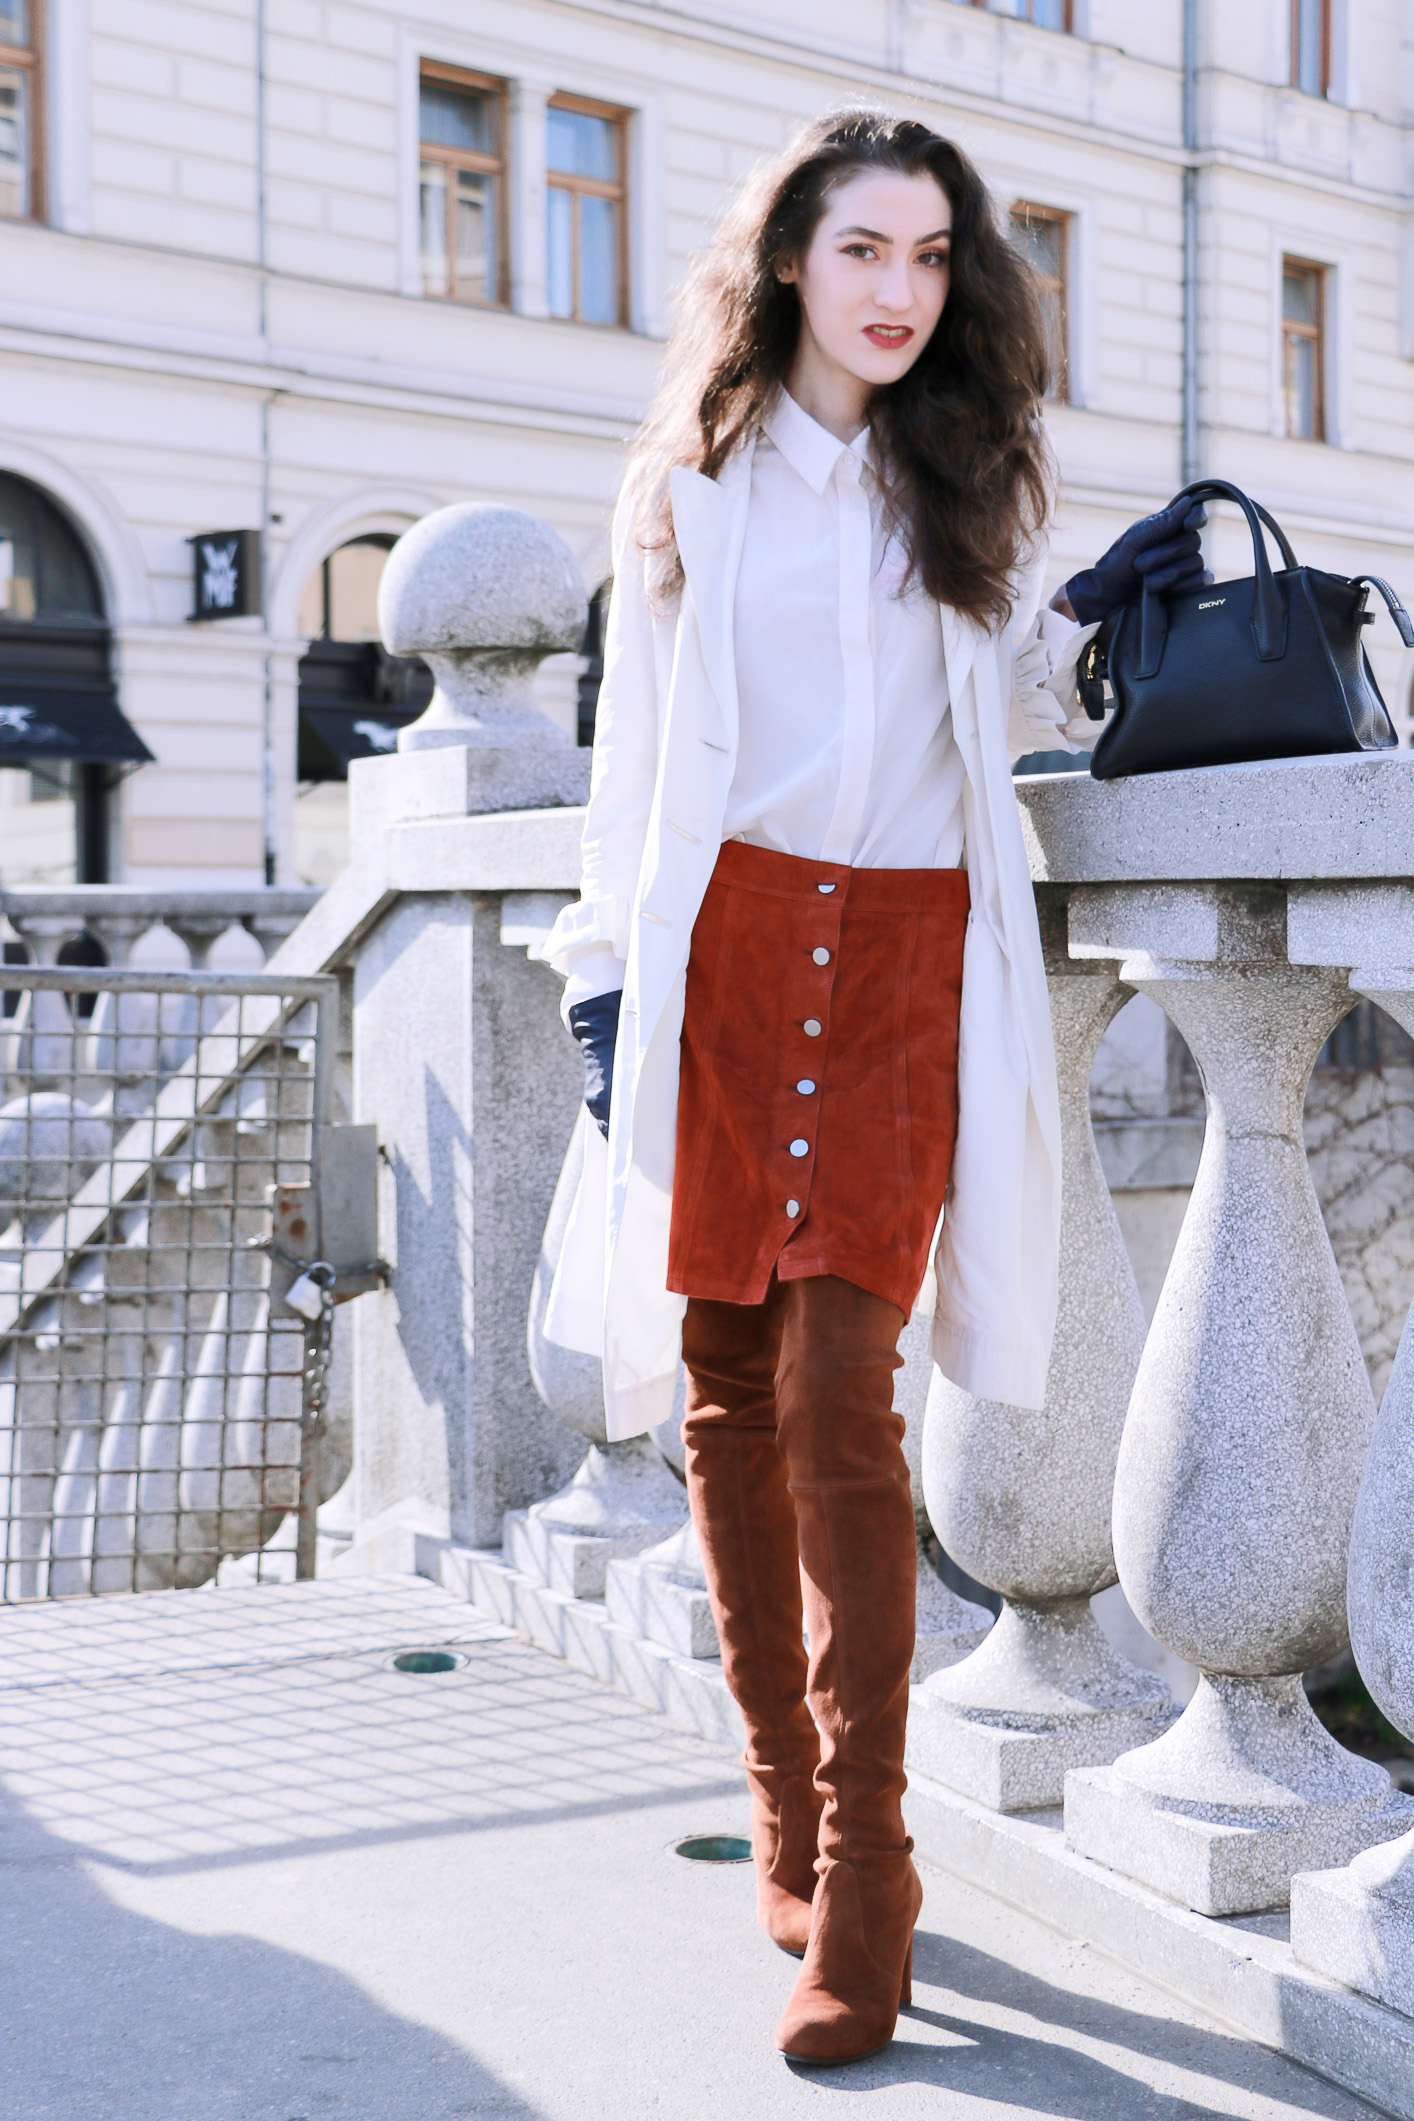 Fashion blogger Veronika Lipar of Brunette From Wall Street sharing the most fashionable outwear of the spring